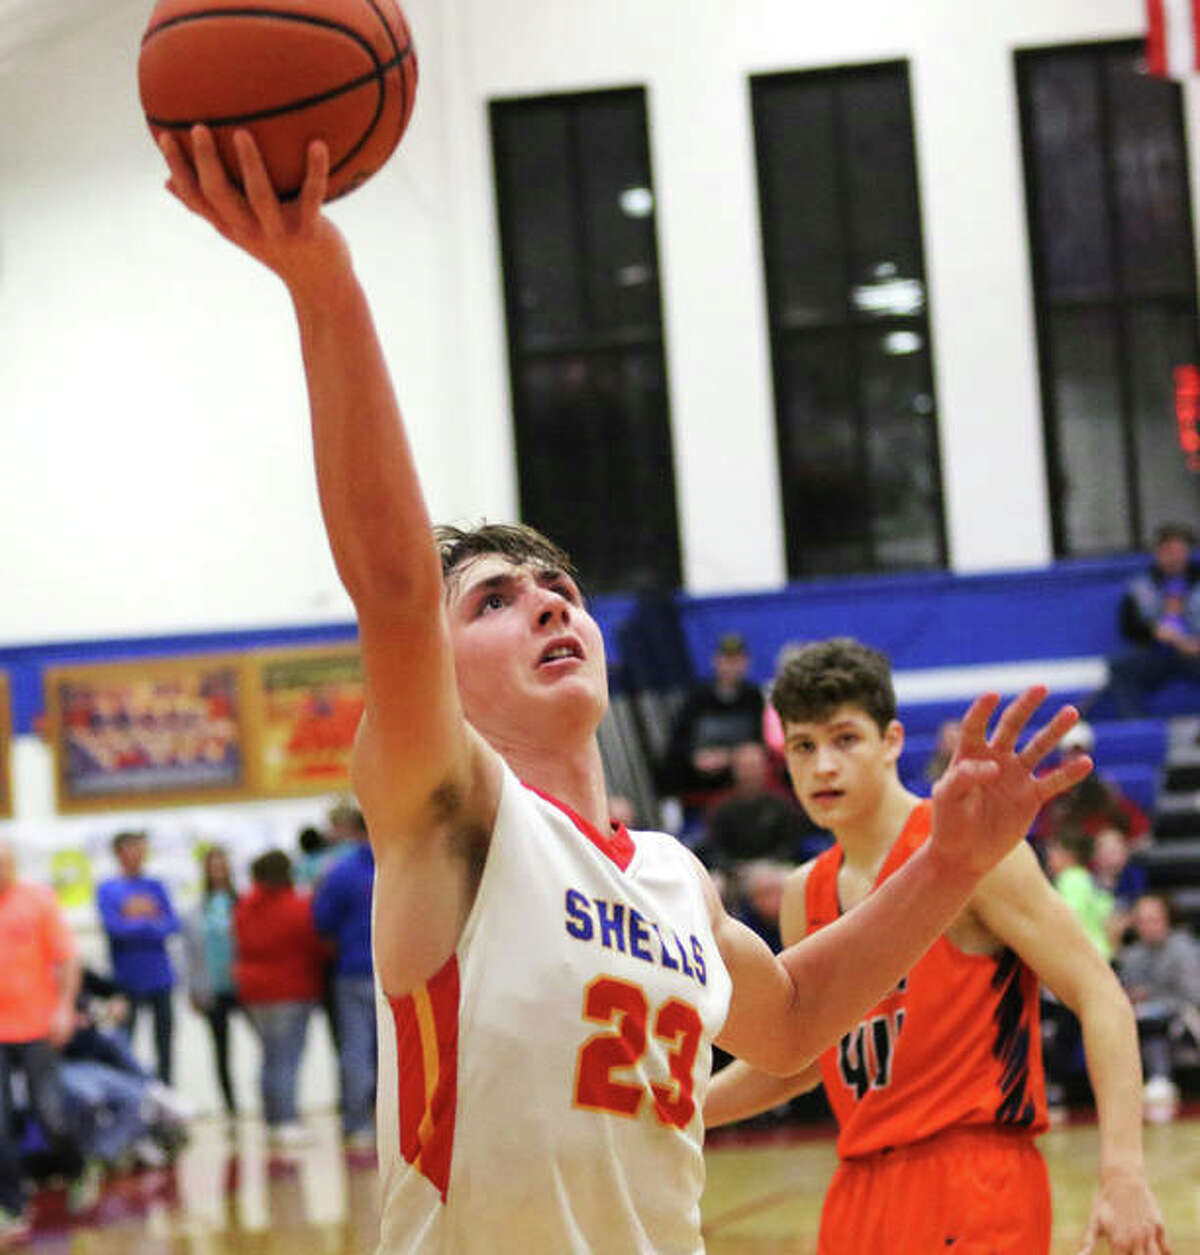 Roxana's Gavin Huffman gets to the basket to score in a SCC game vs. Pana on Feb. 11 at Milazzo Gym in Roxana.